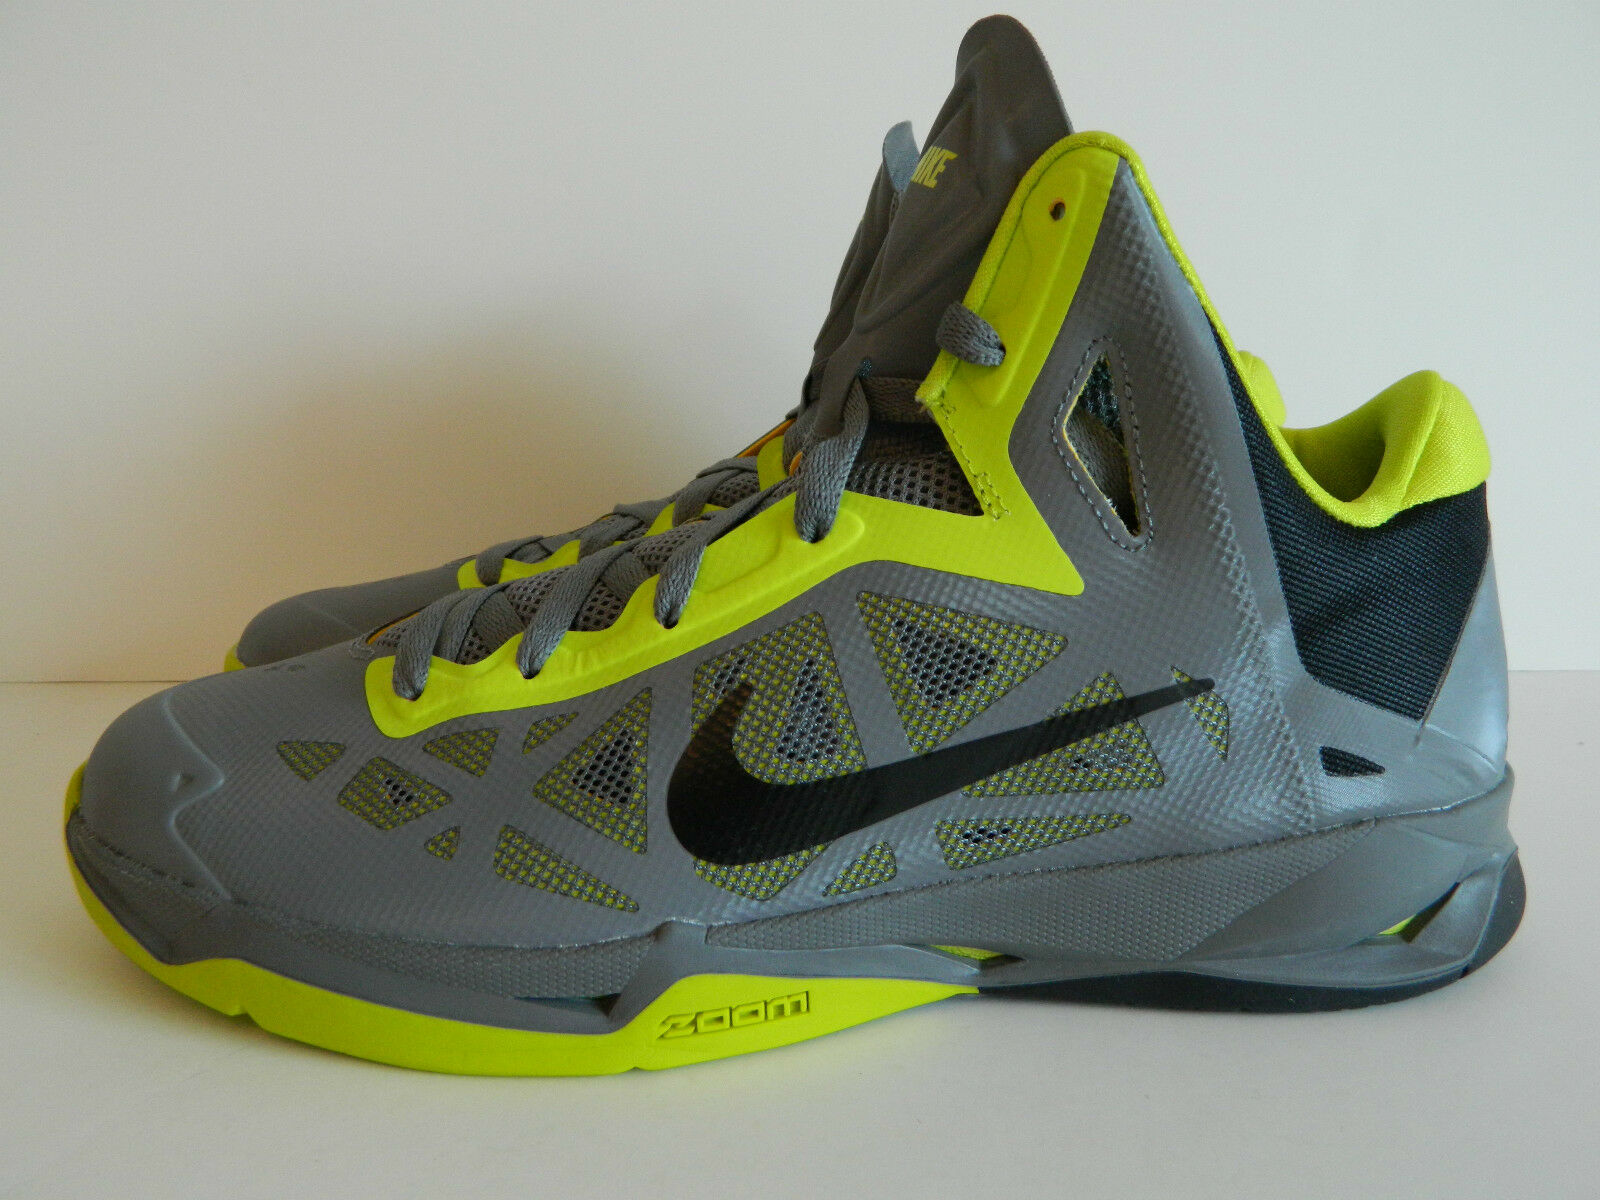 Nike zoom hyperchaos (cool 006) grey e atomic green) (536841 006) (cool pennino.!! c04963